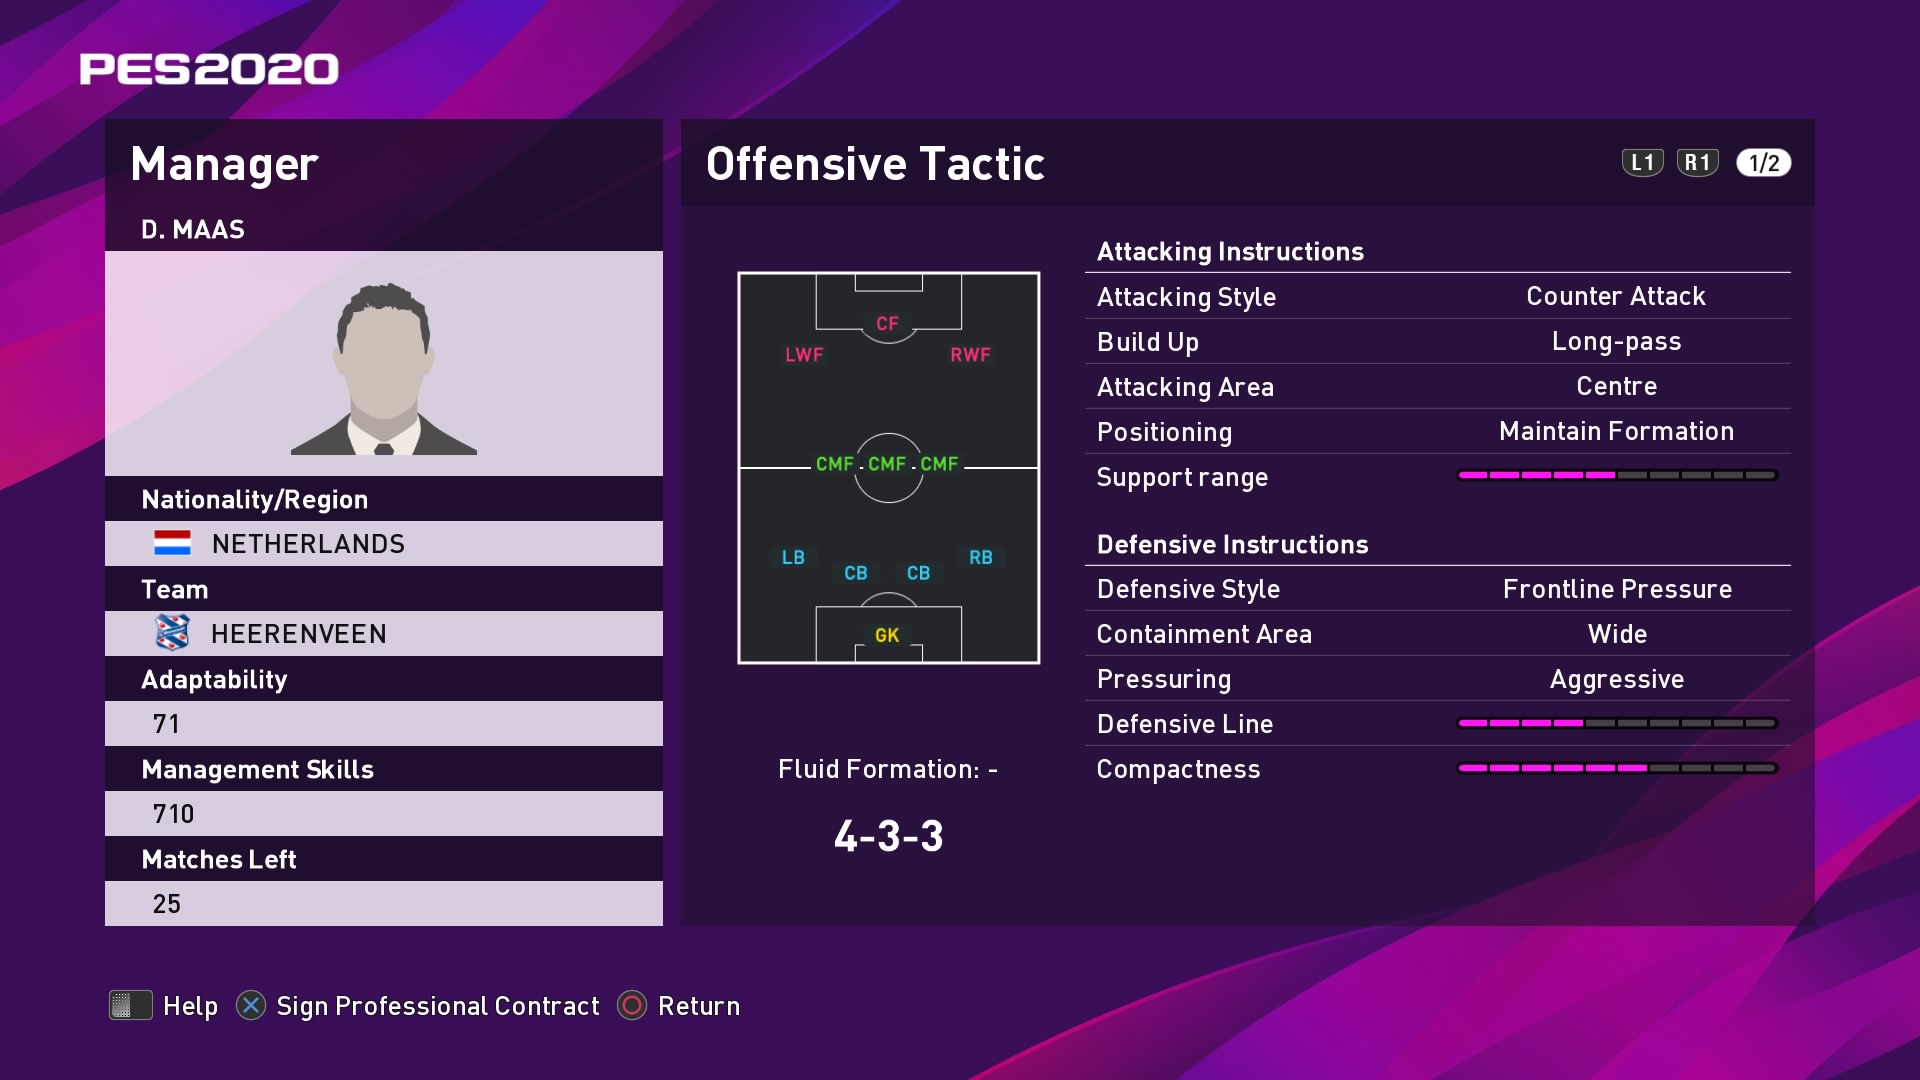 D. Maas (Johnny Jansen) Offensive Tactic in PES 2020 myClub